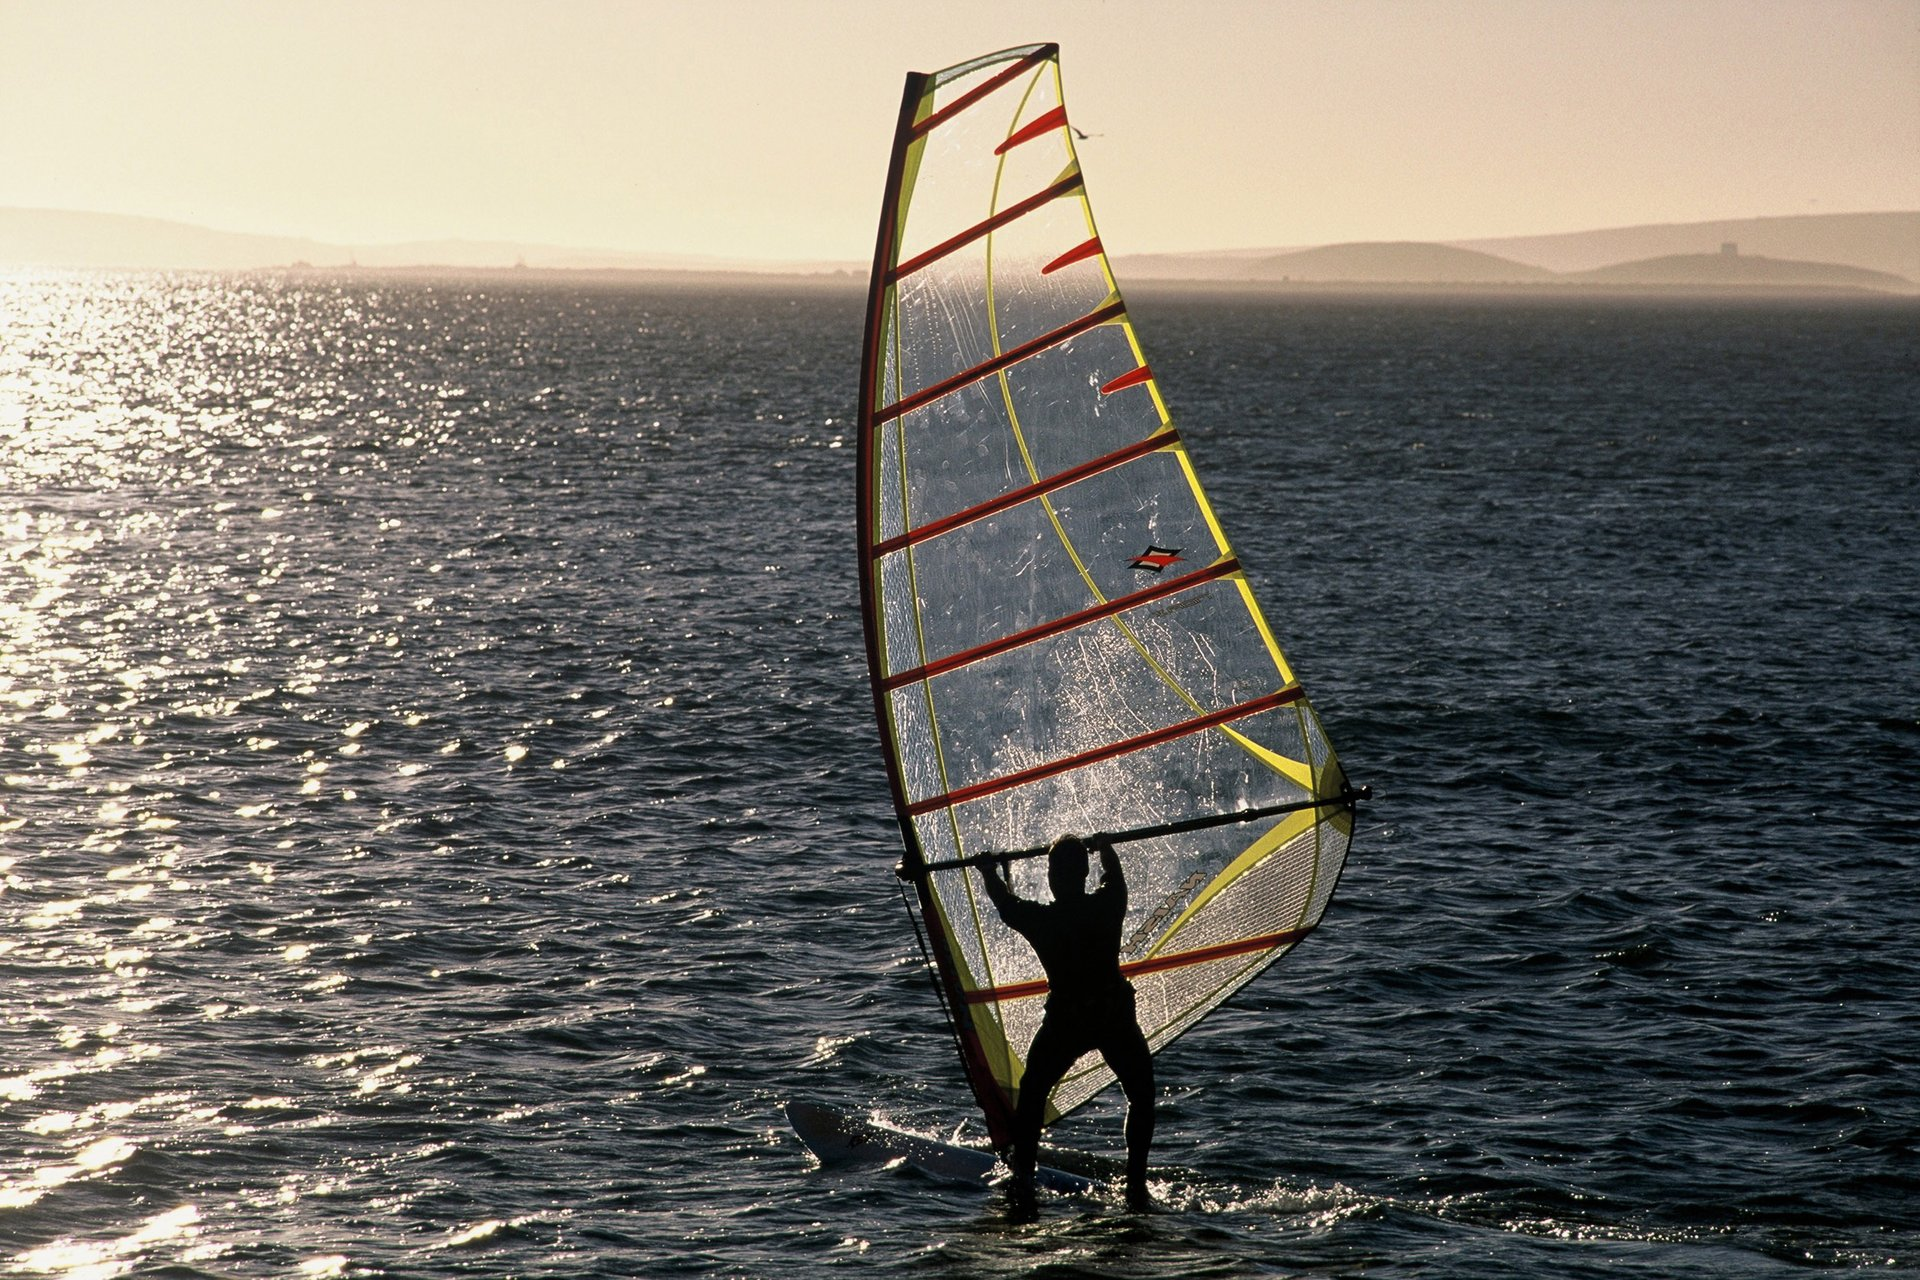 Langebaan windsurfing 2020